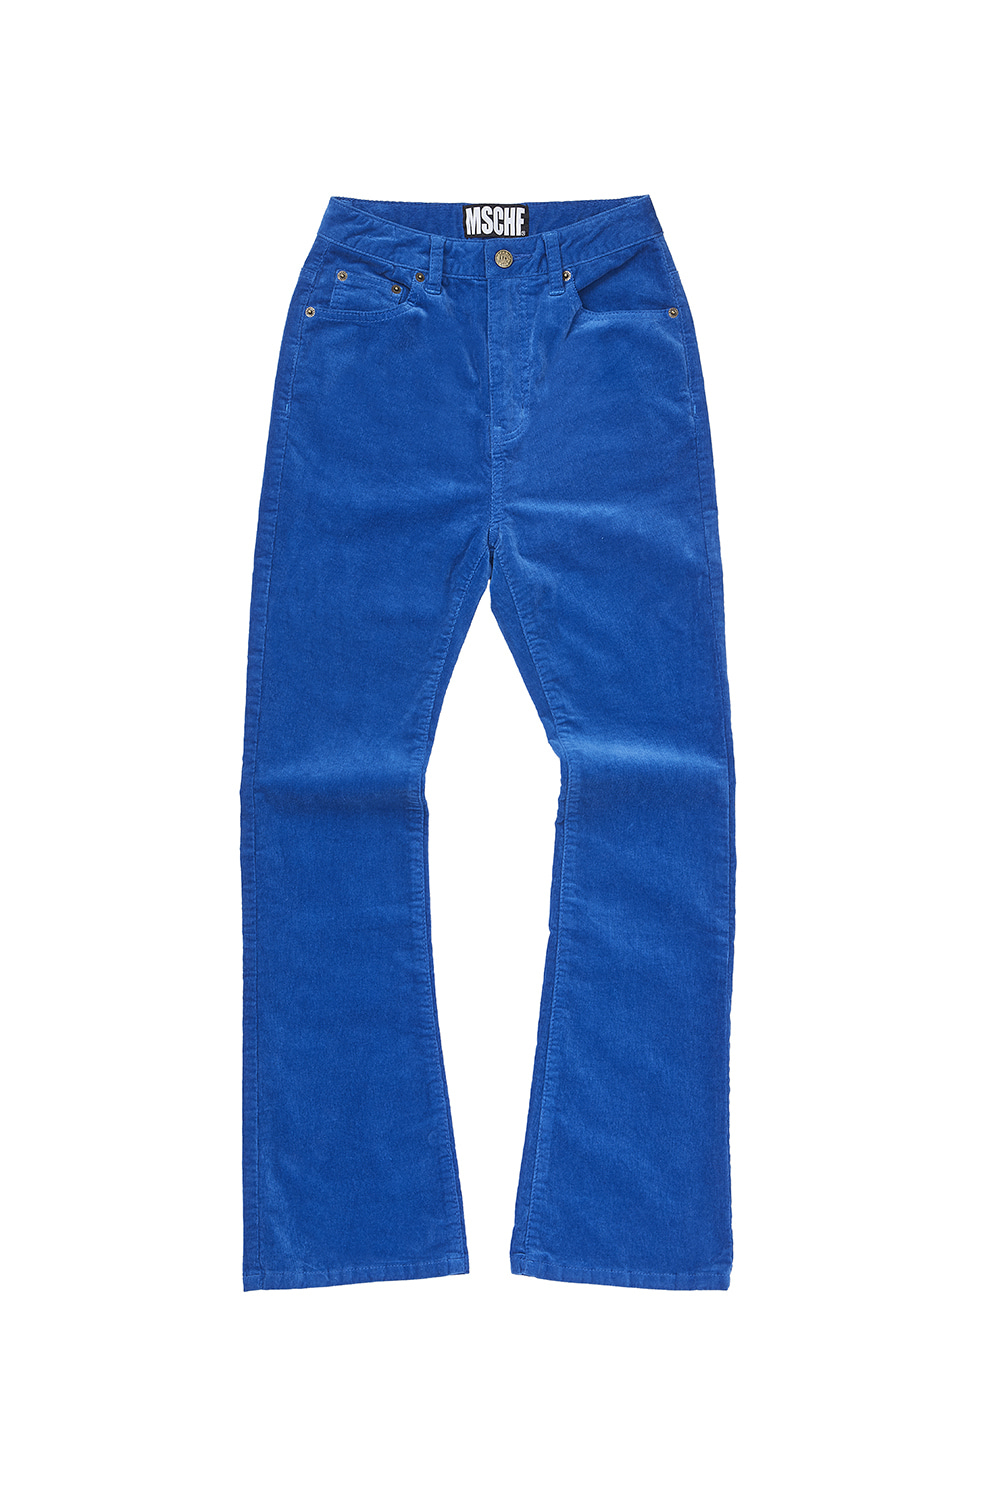 CORDUROY BOOT CUT PANTS_blue